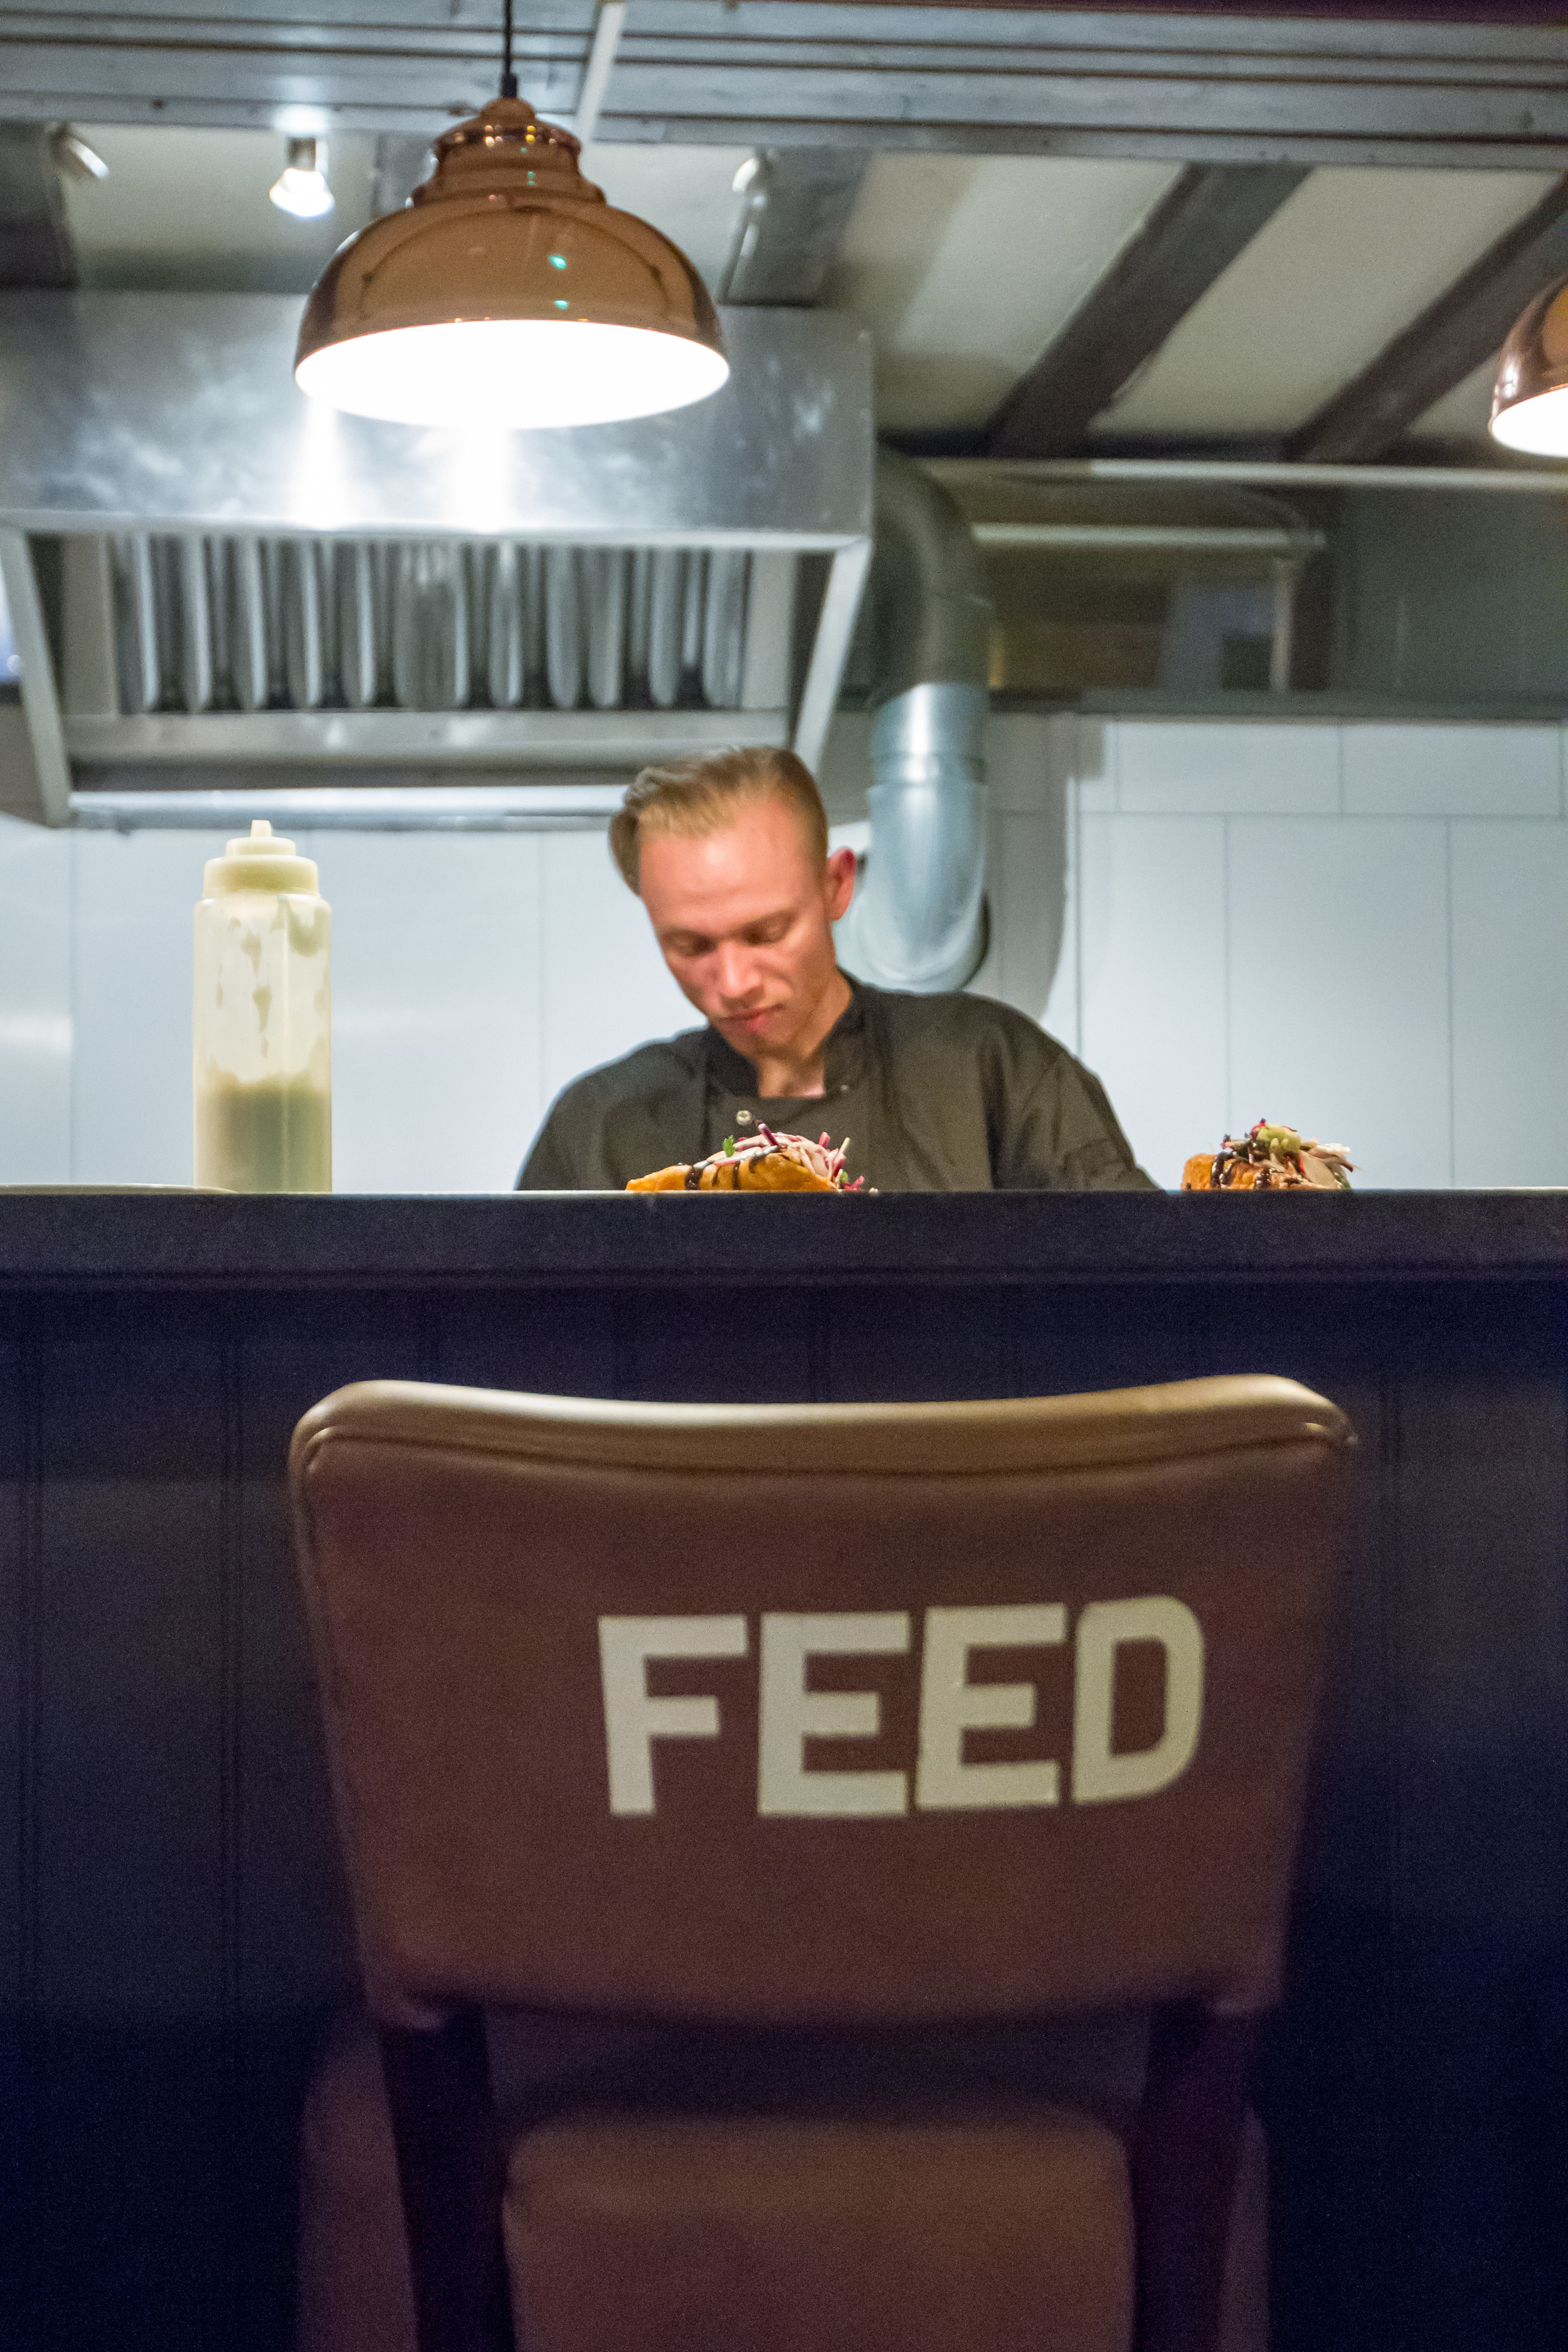 feed at nomad.jpghttps://www.flickr.com/photos/anotherpintplease/27879006182/in/dateposted/